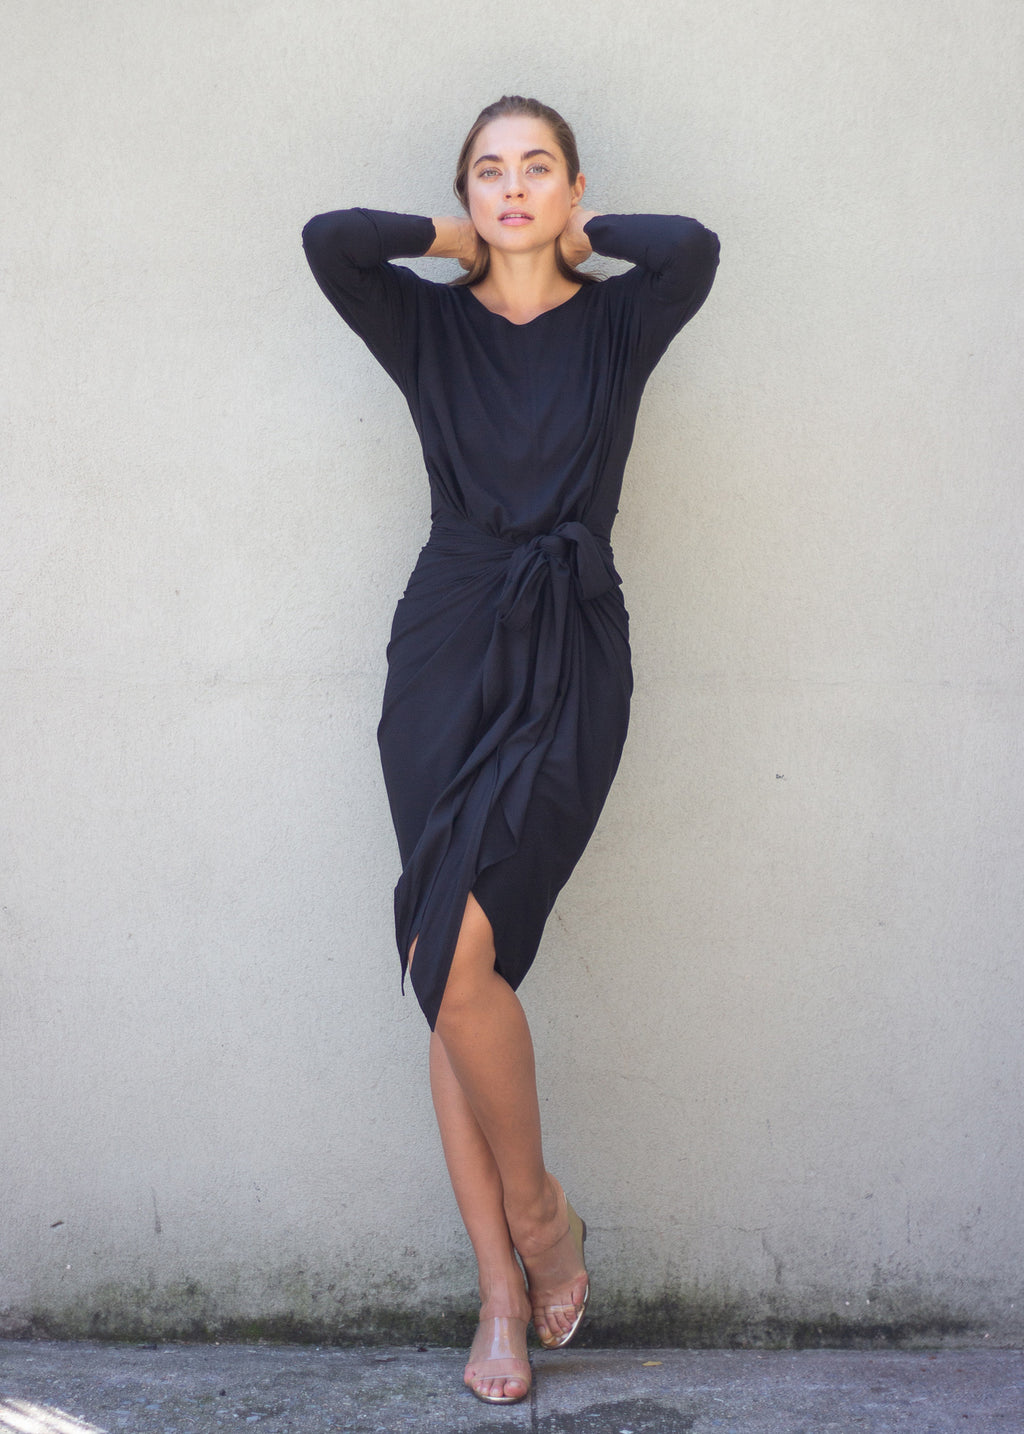 Apron Dress - Long Sleeve - Black